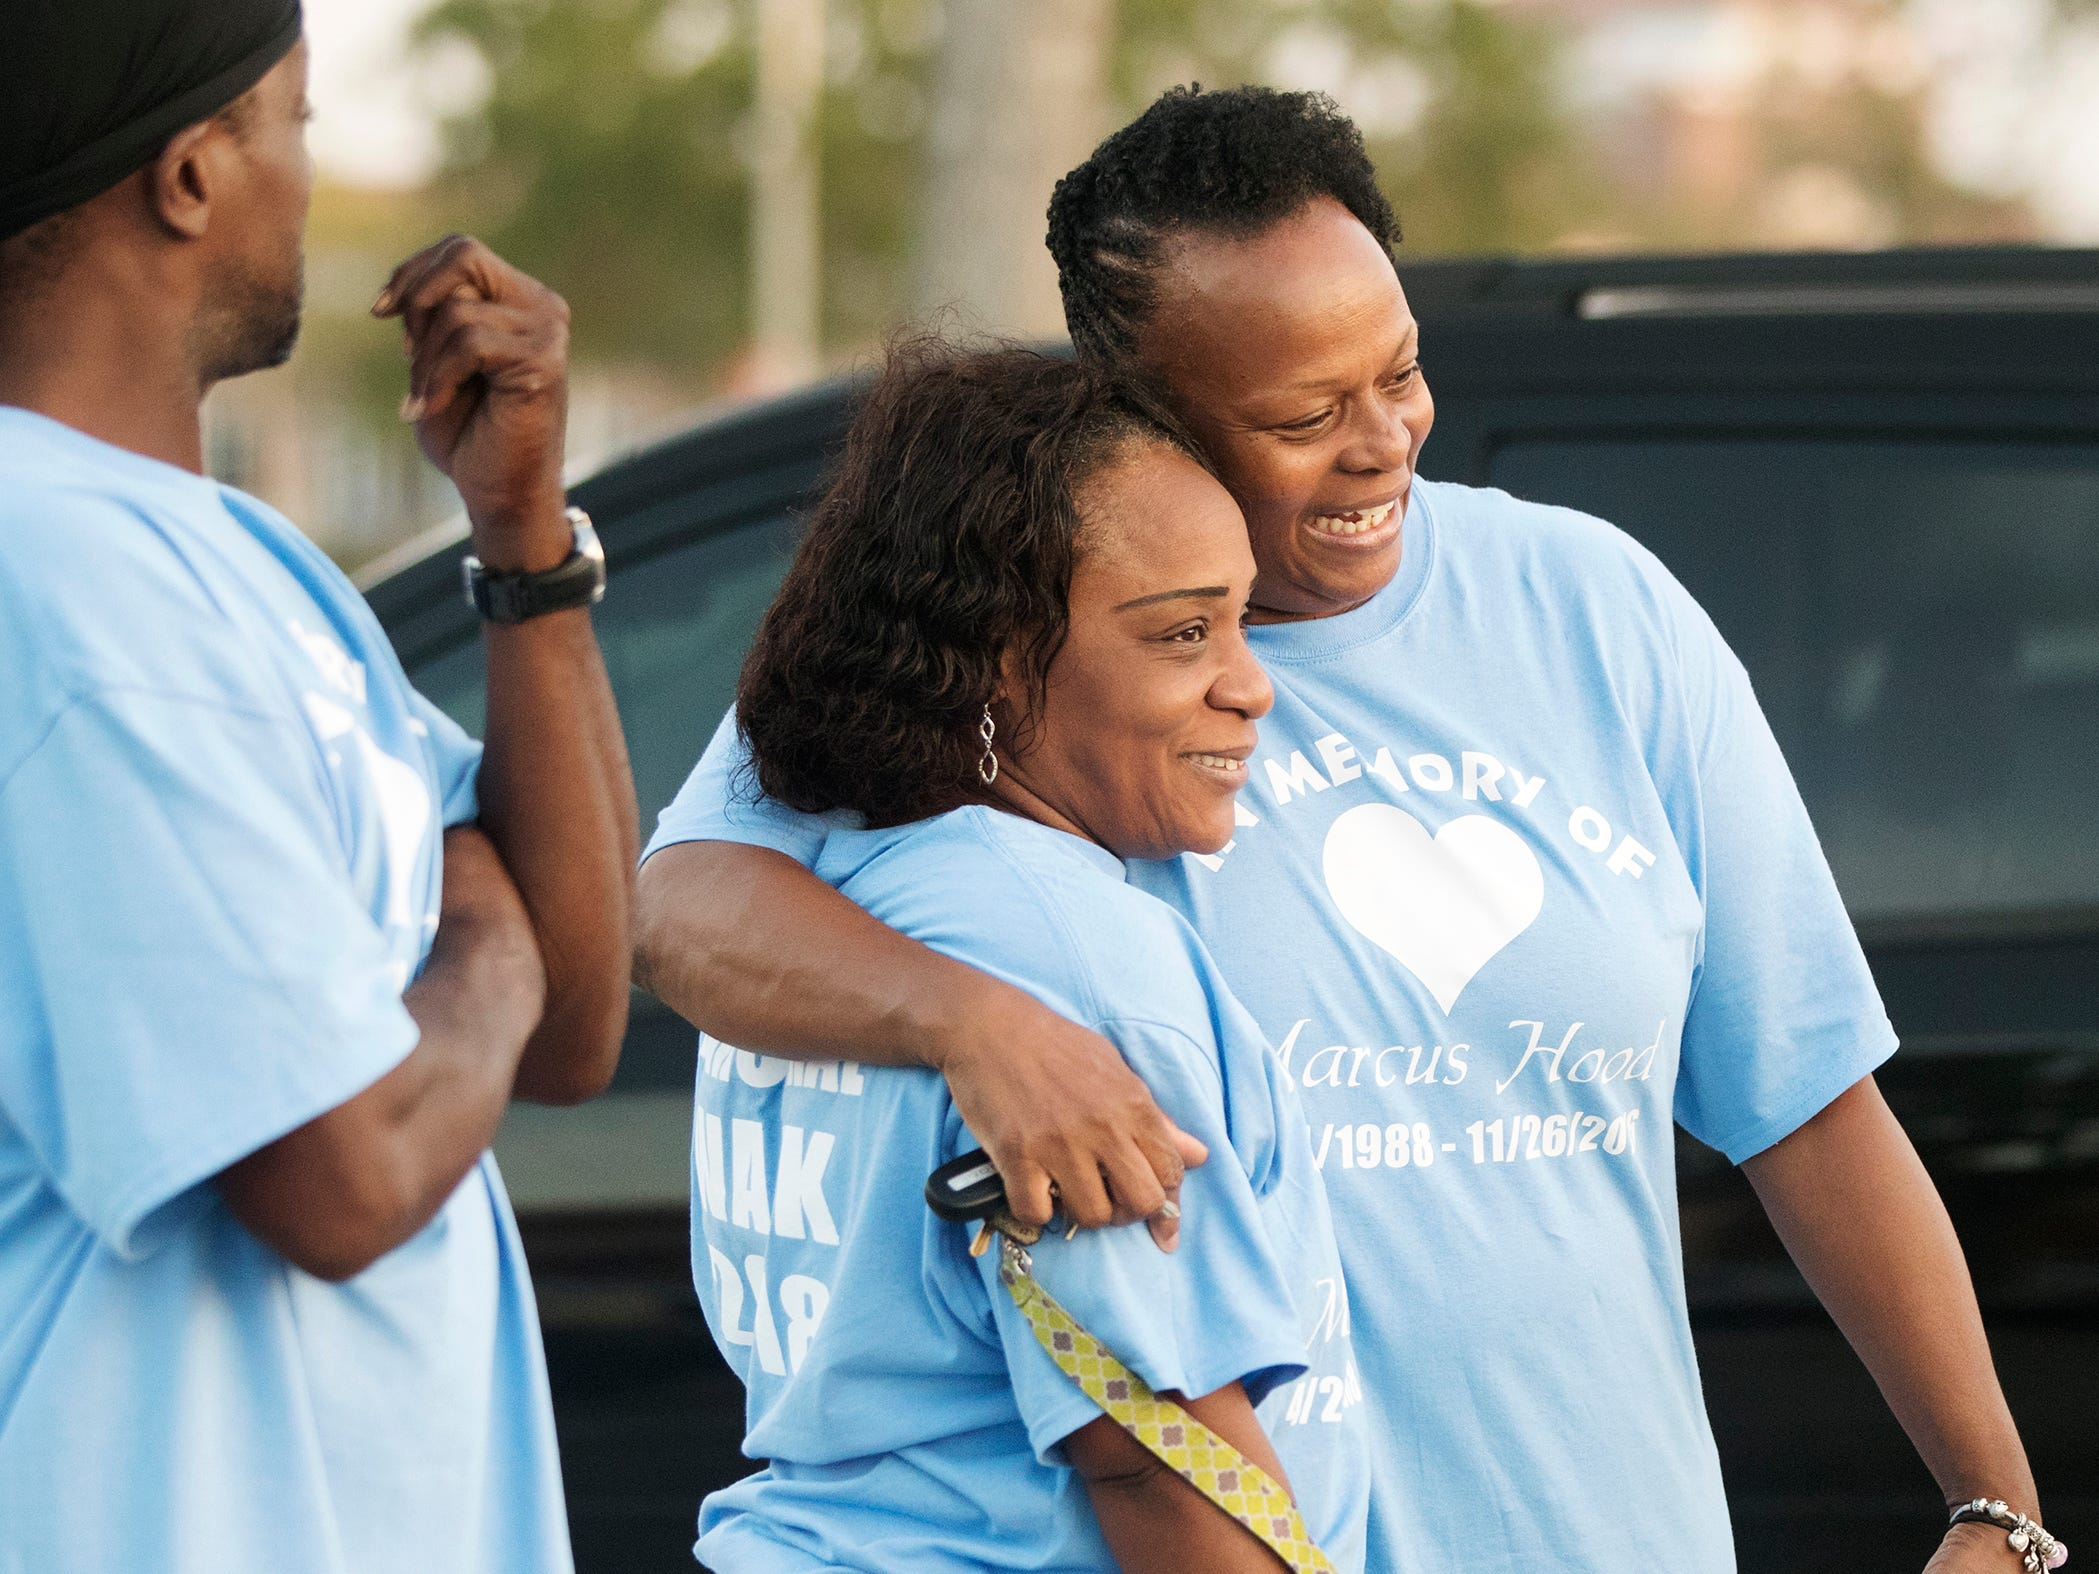 Michelle Taylor, center, joins Renee Perkins on recently at a memorial walk for Perkins' son, Marcus Hood, who was killed two years ago in a shooting at the Gulf Coast Town Center in San Carlos Park. More than 35 of Hood's family members and friends walked four miles from the center to Cypress View Drive where emergency personnel found Hood.